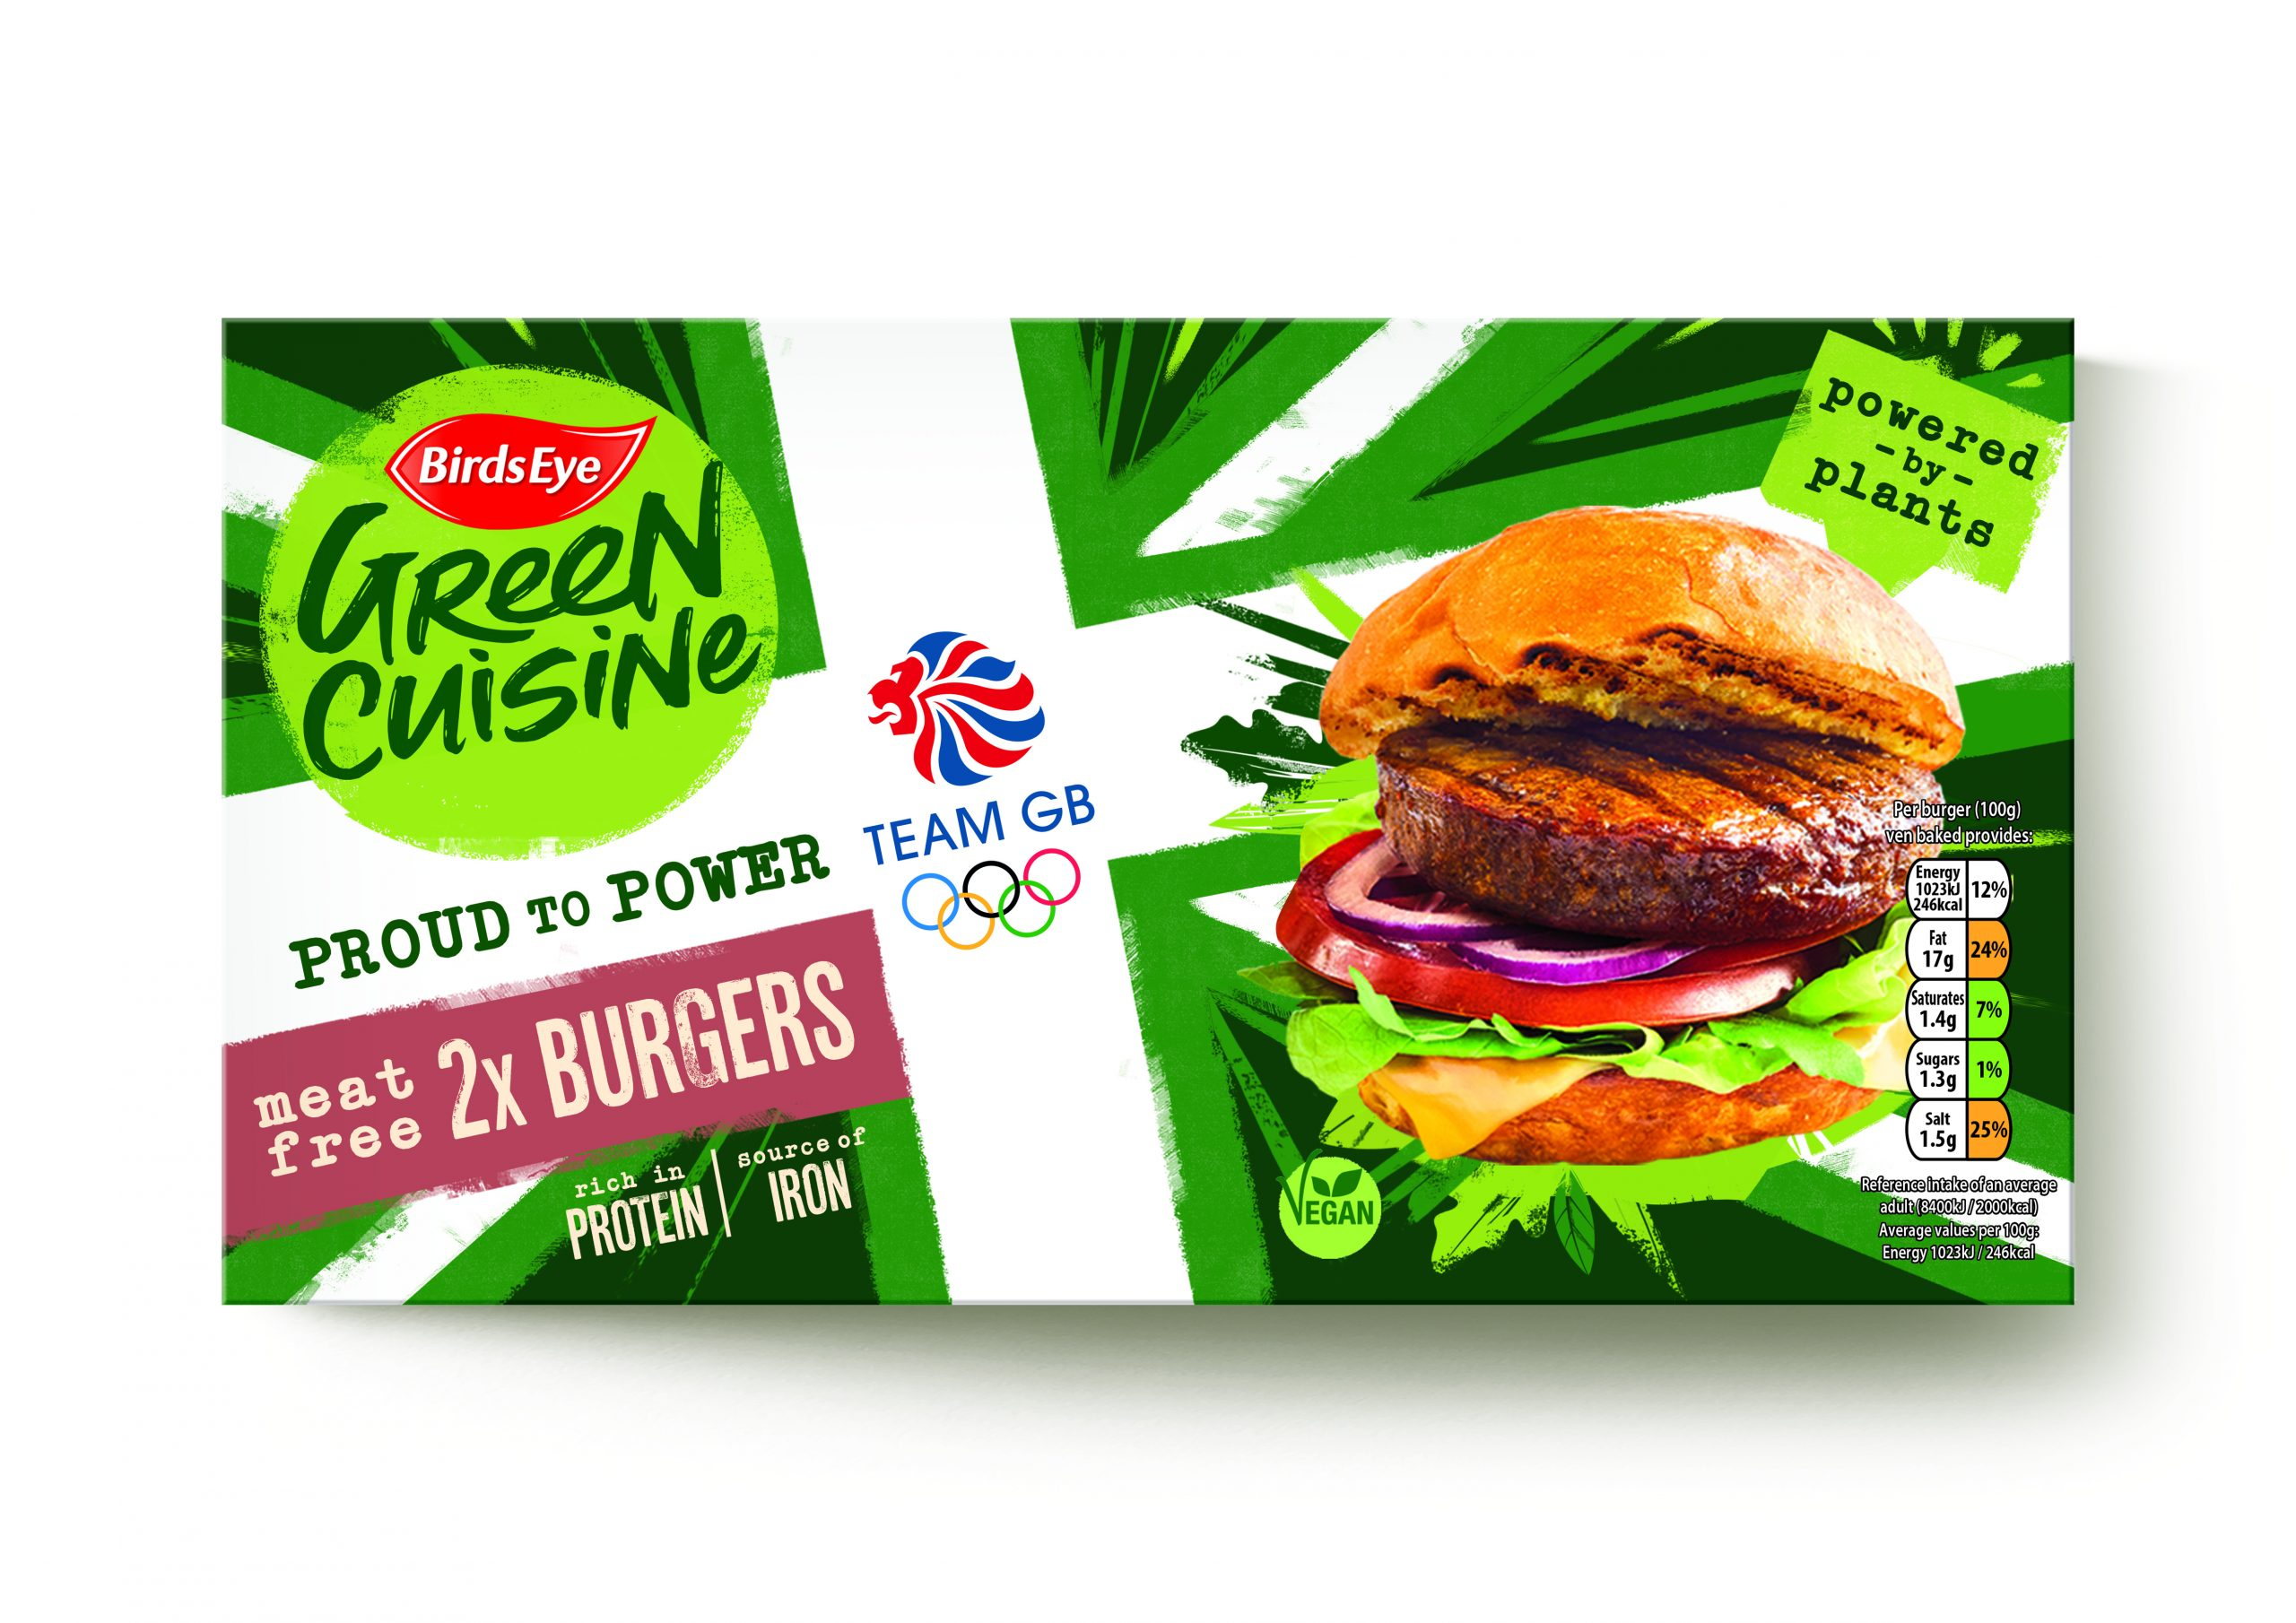 Birds Eye Green Cuisine becomes official supporter of Team GB